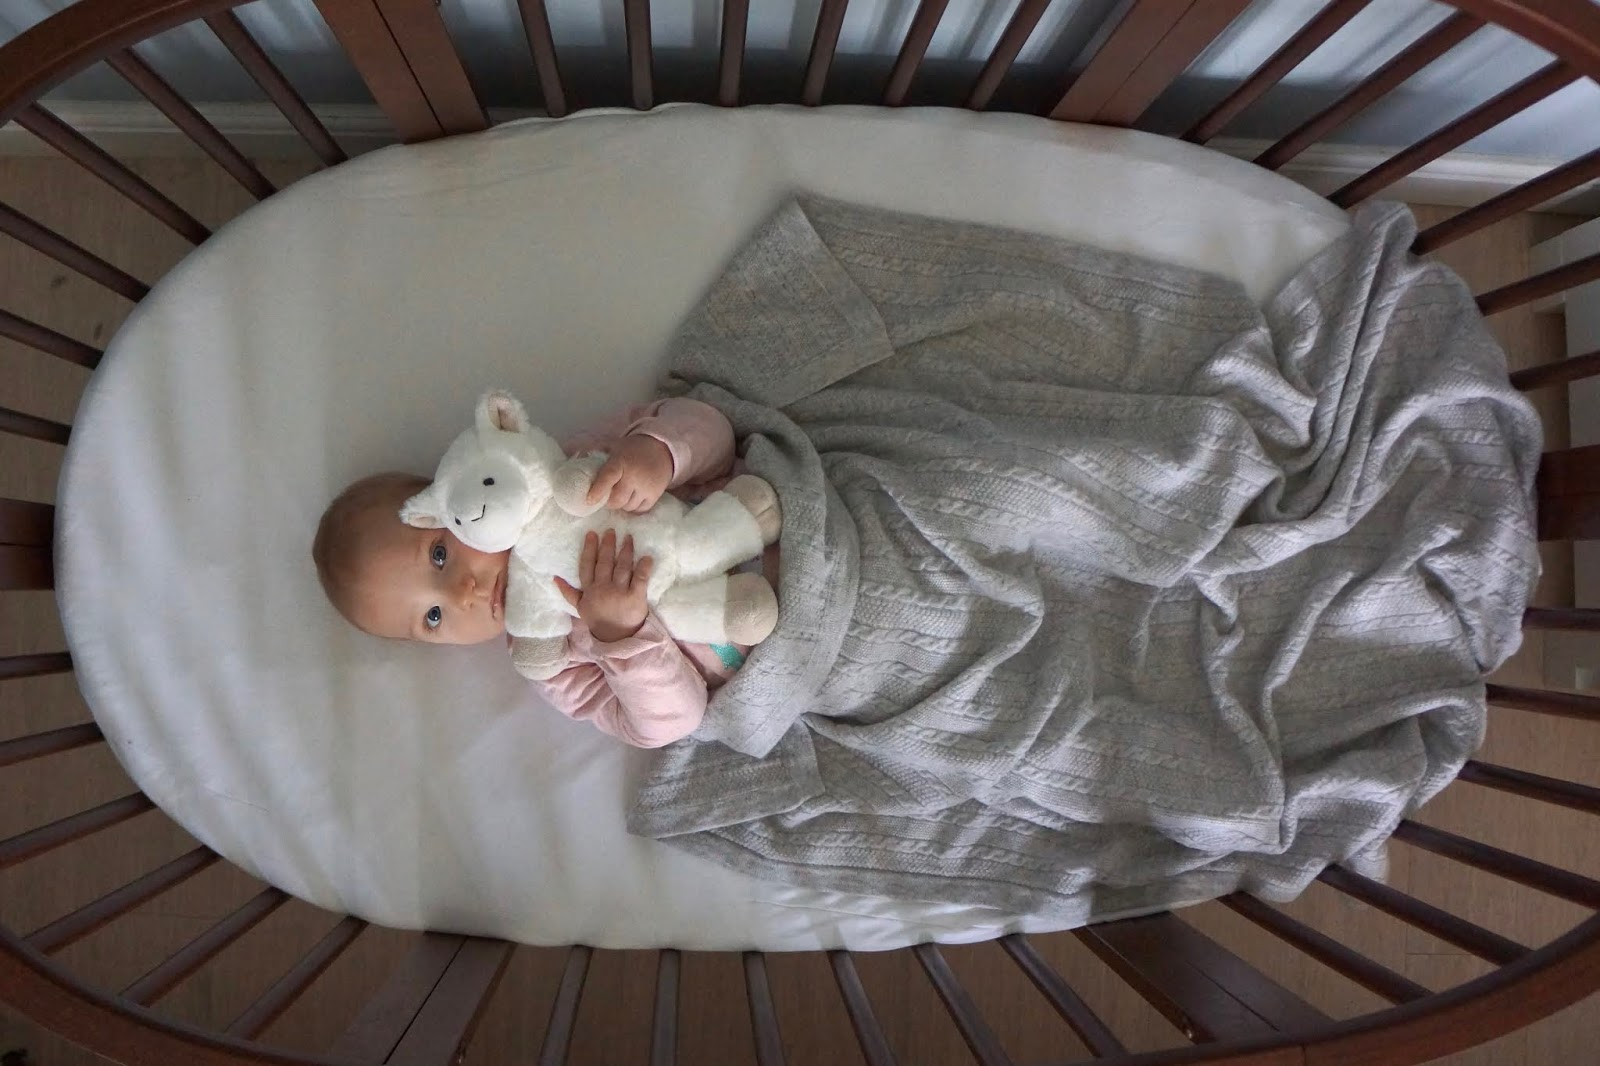 baby in a cot with cashmere blanket